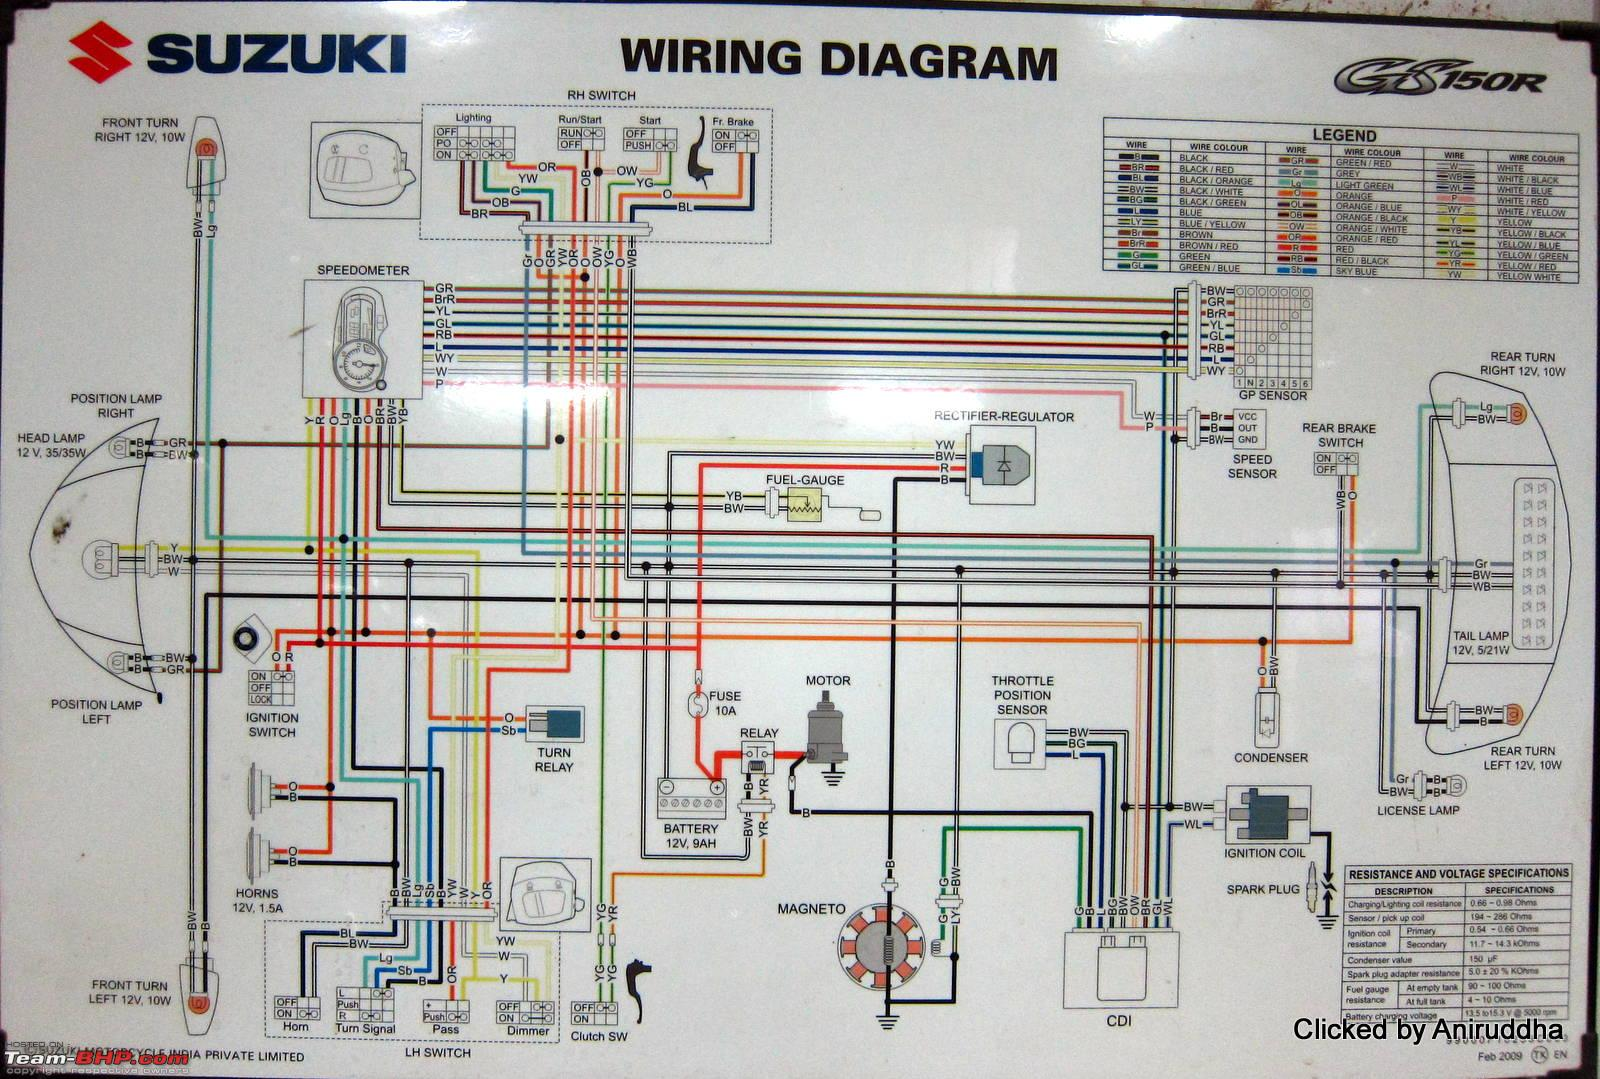 Wiring diagrams of Indian two-wheelers-img_0717.jpg. Suzuki Access 125